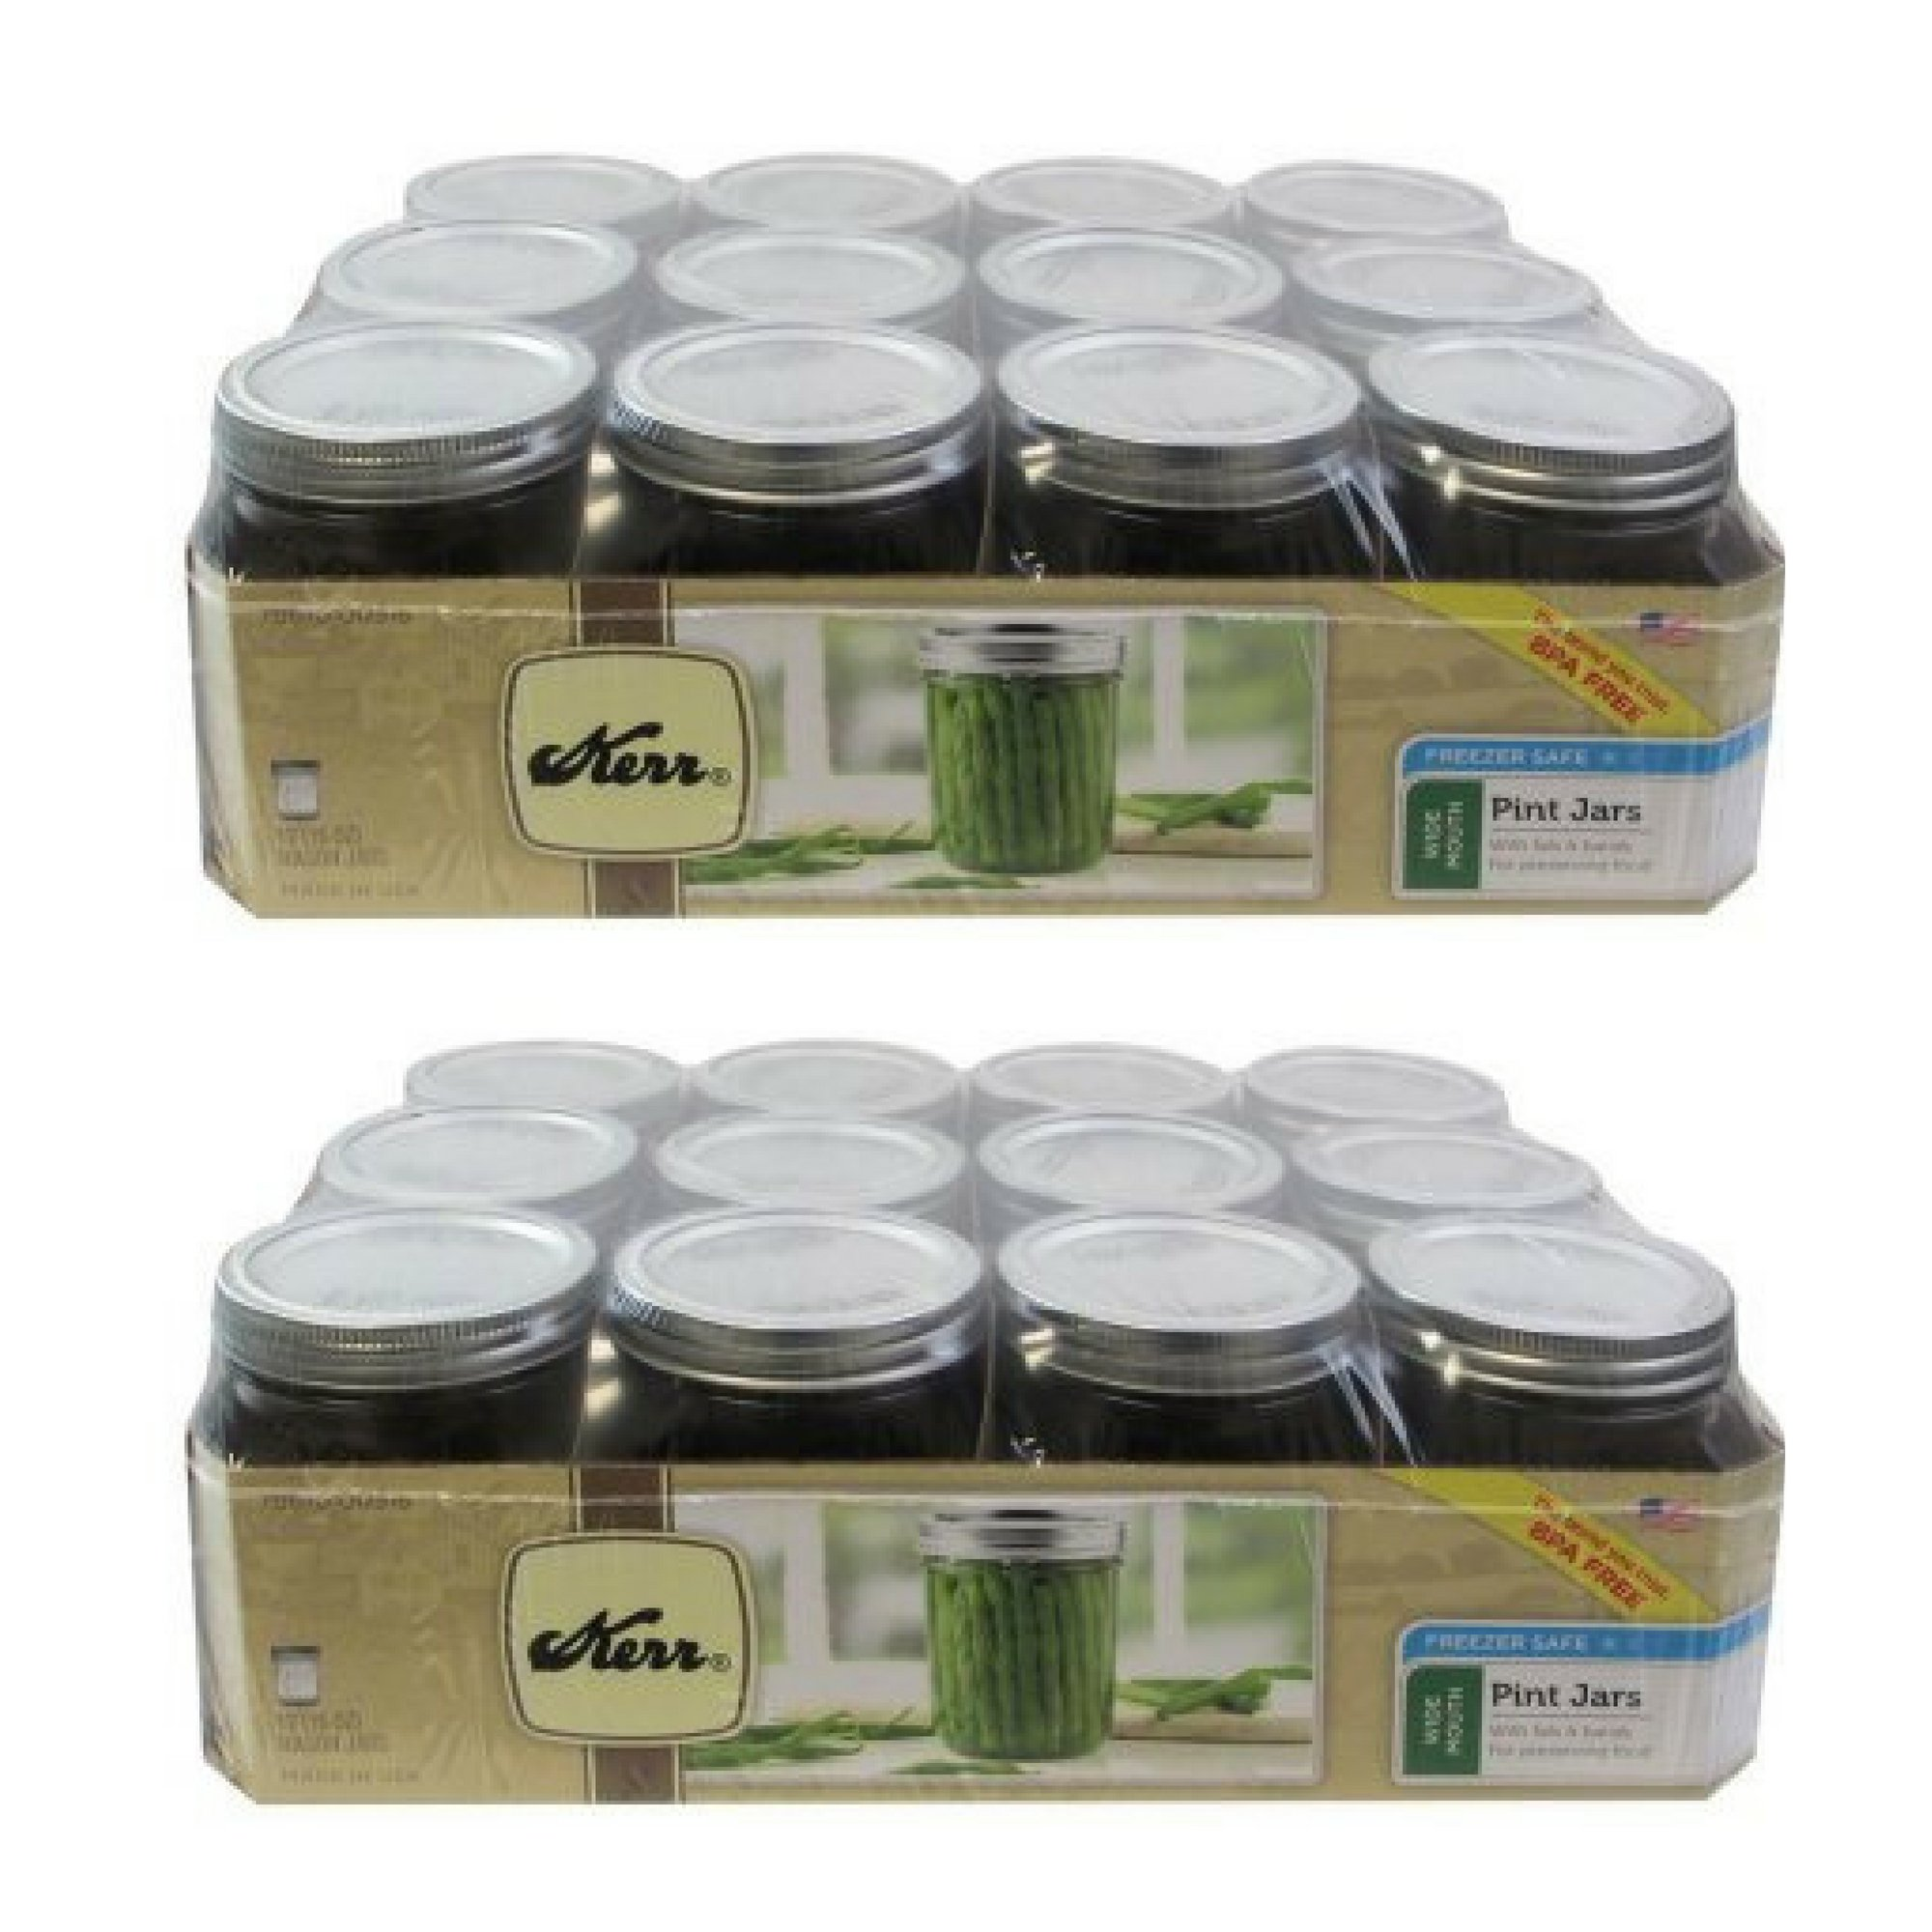 Kerr Wide Mouth Pint 16 Oz. Glass Mason Jars with Lids and Bands, 12 Count - 2 Pack